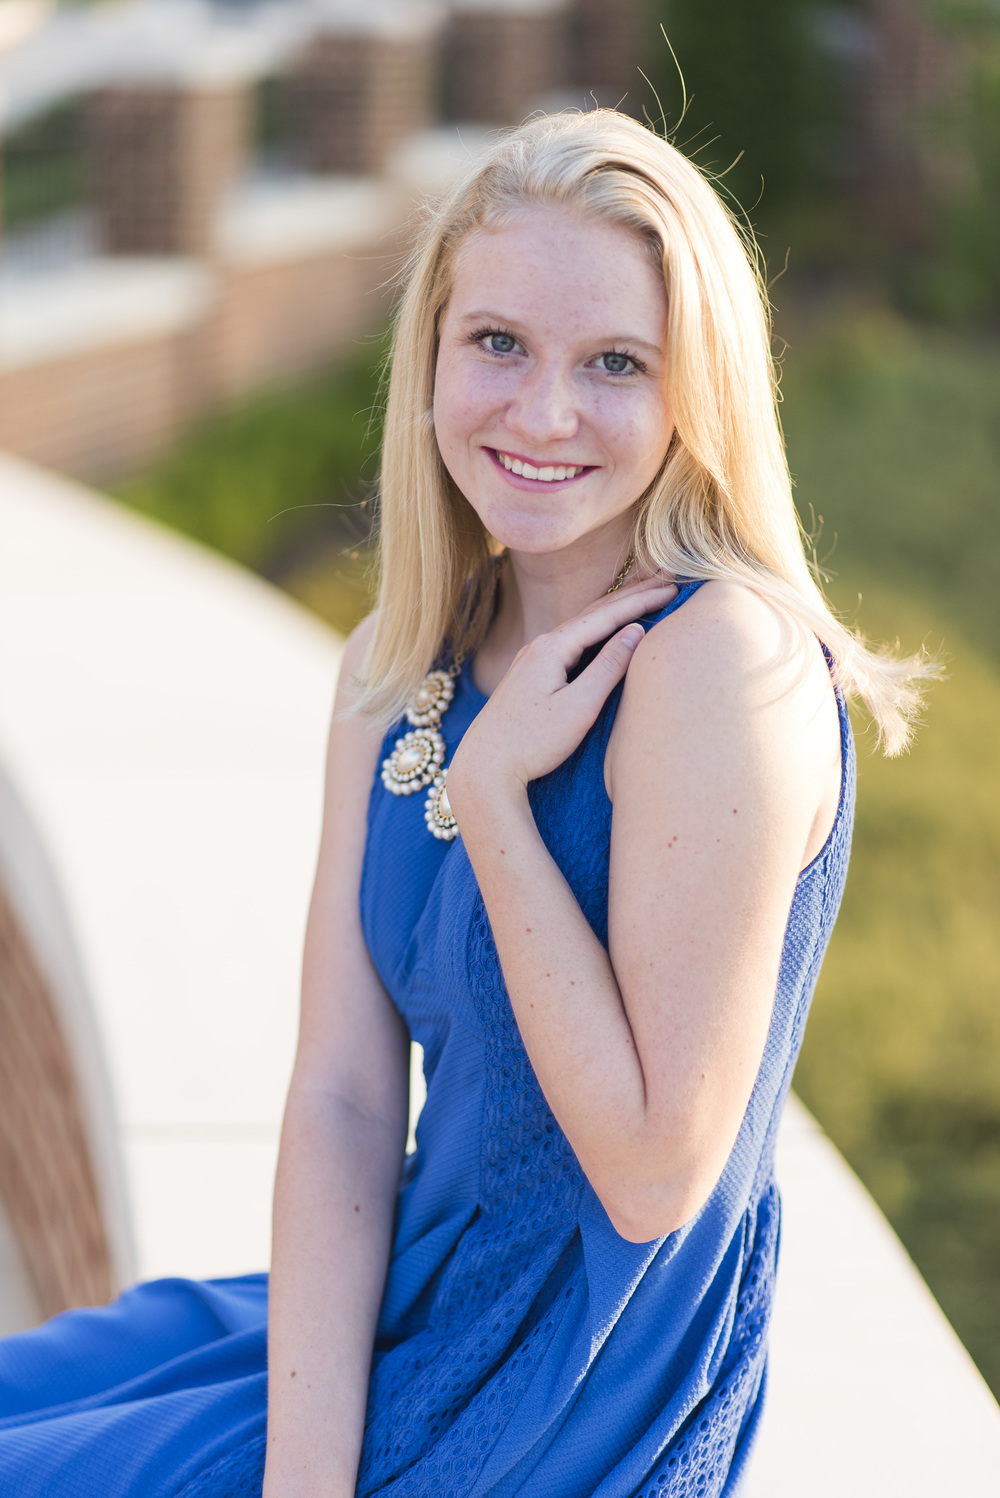 Senior_Session_Class_2016_cheerleading_VA_photos20150831_0574.jpg